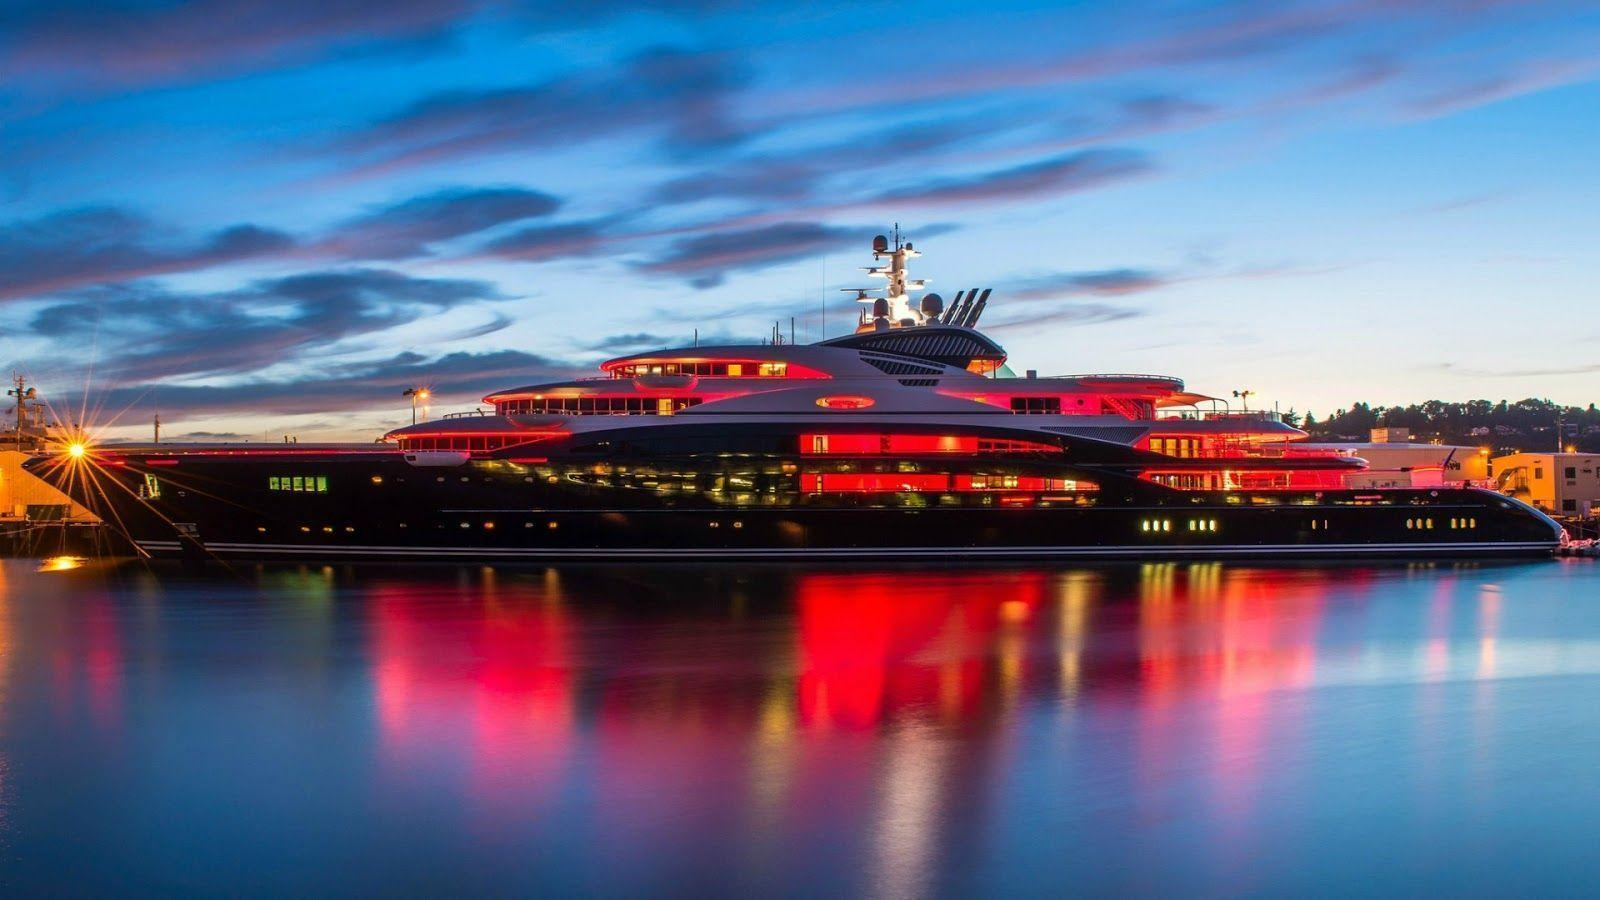 Yacht Pictures, Luxury Private Yachts: Mega Yacht Full HD Desktop